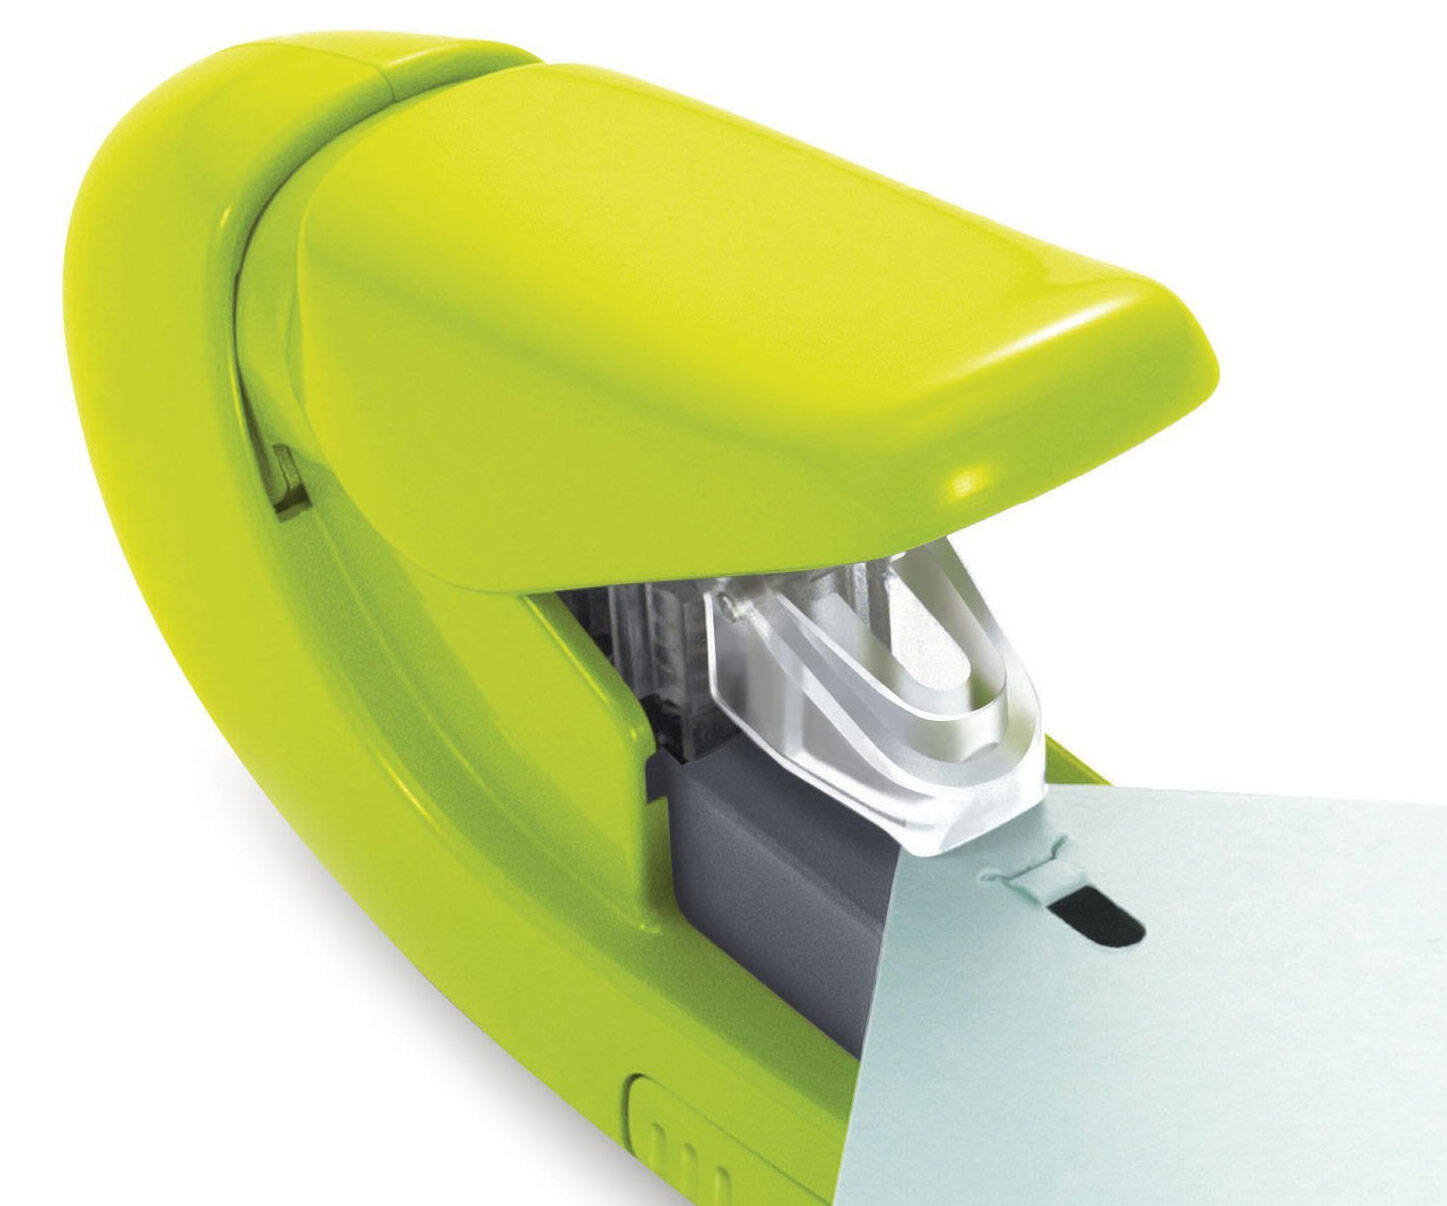 The Staple Free Stapler - coolthings.us